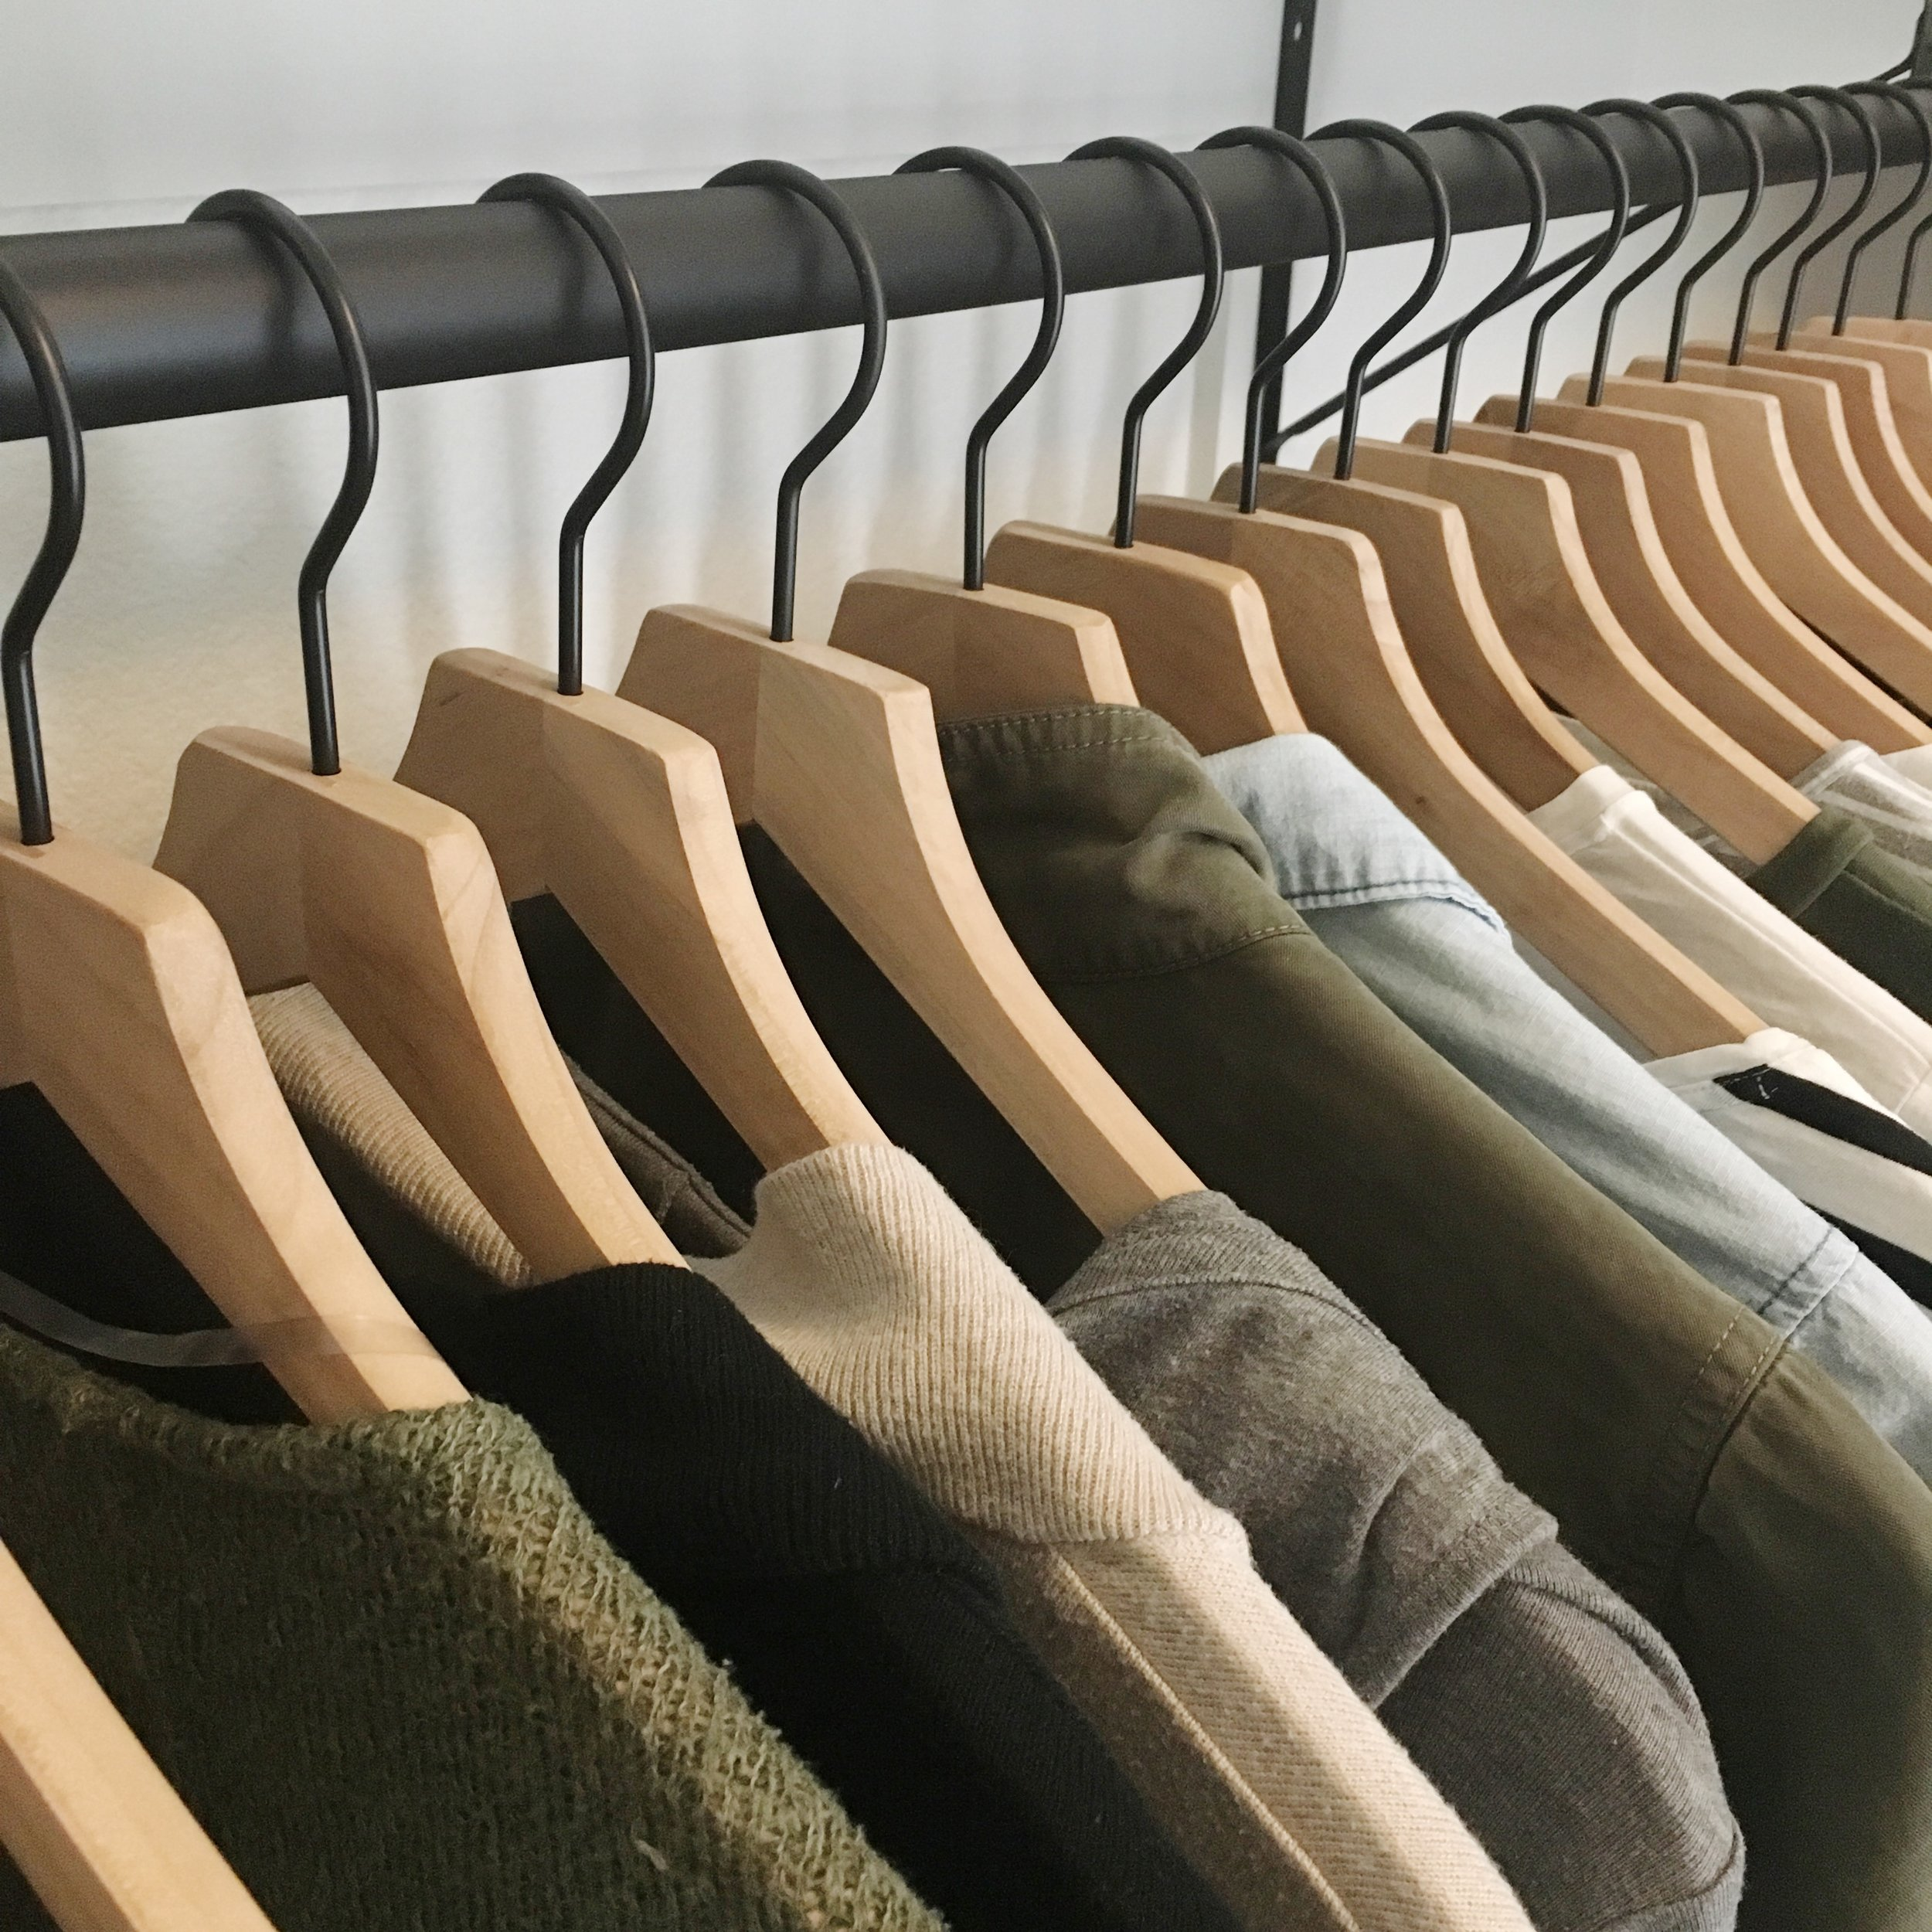 Capsule Wardrobe clothing in organized closet with ethical brands & clothing